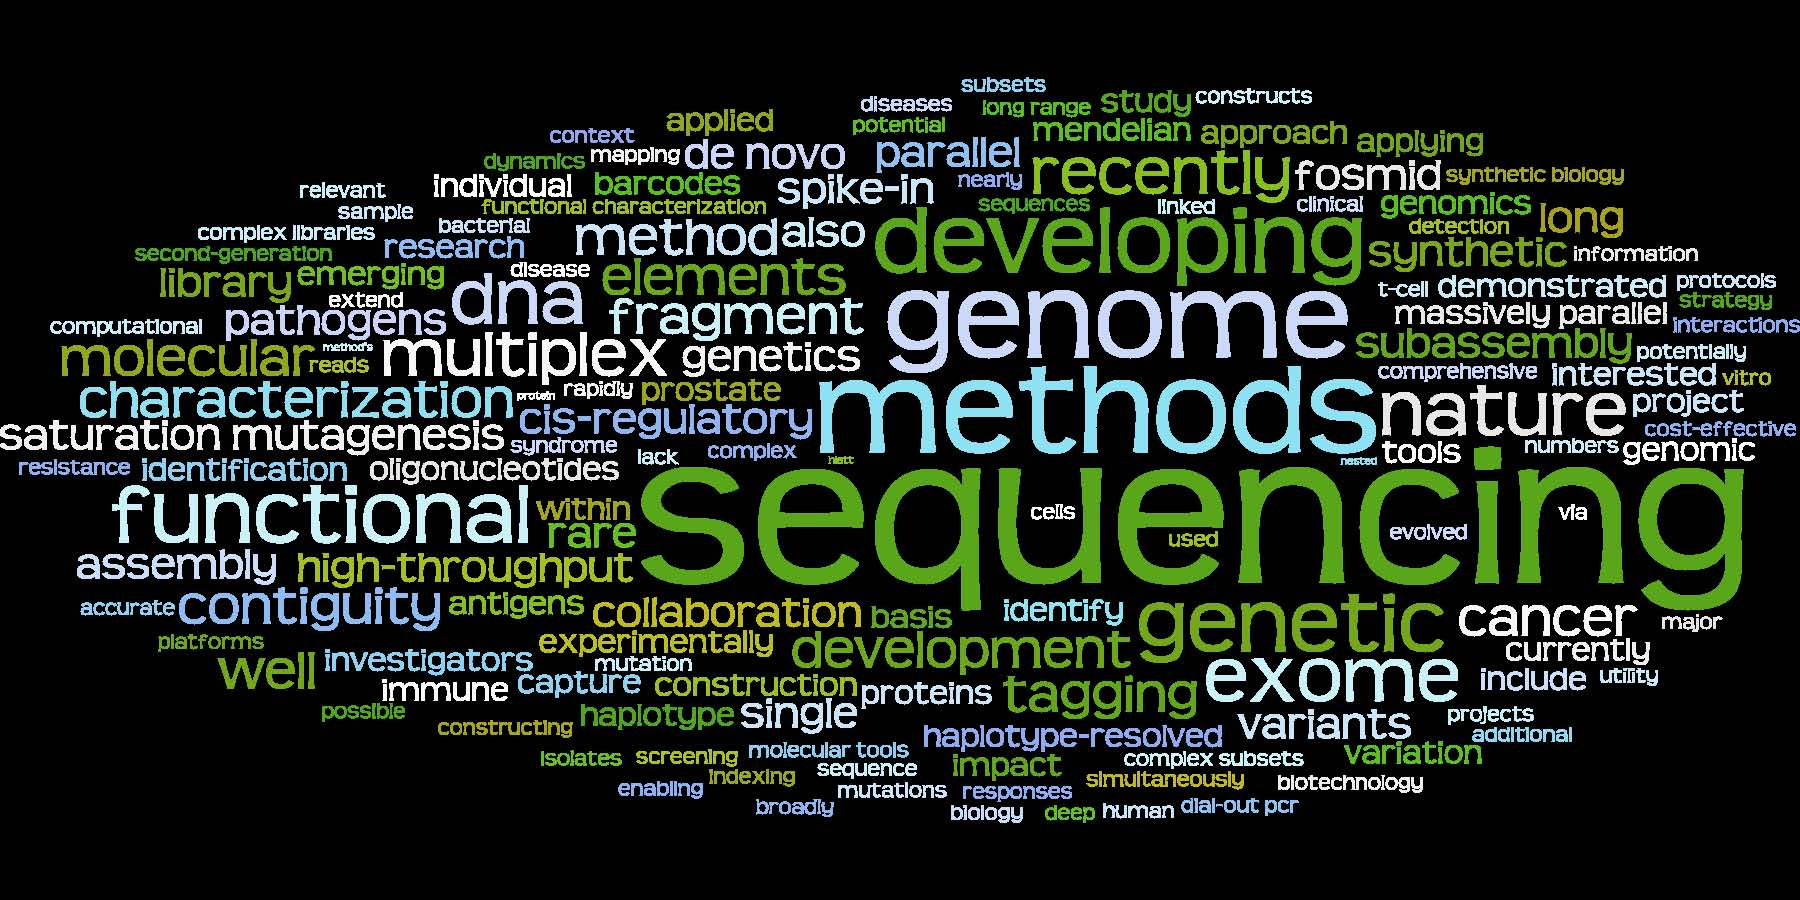 Wordle based on abstract content (September 2011)